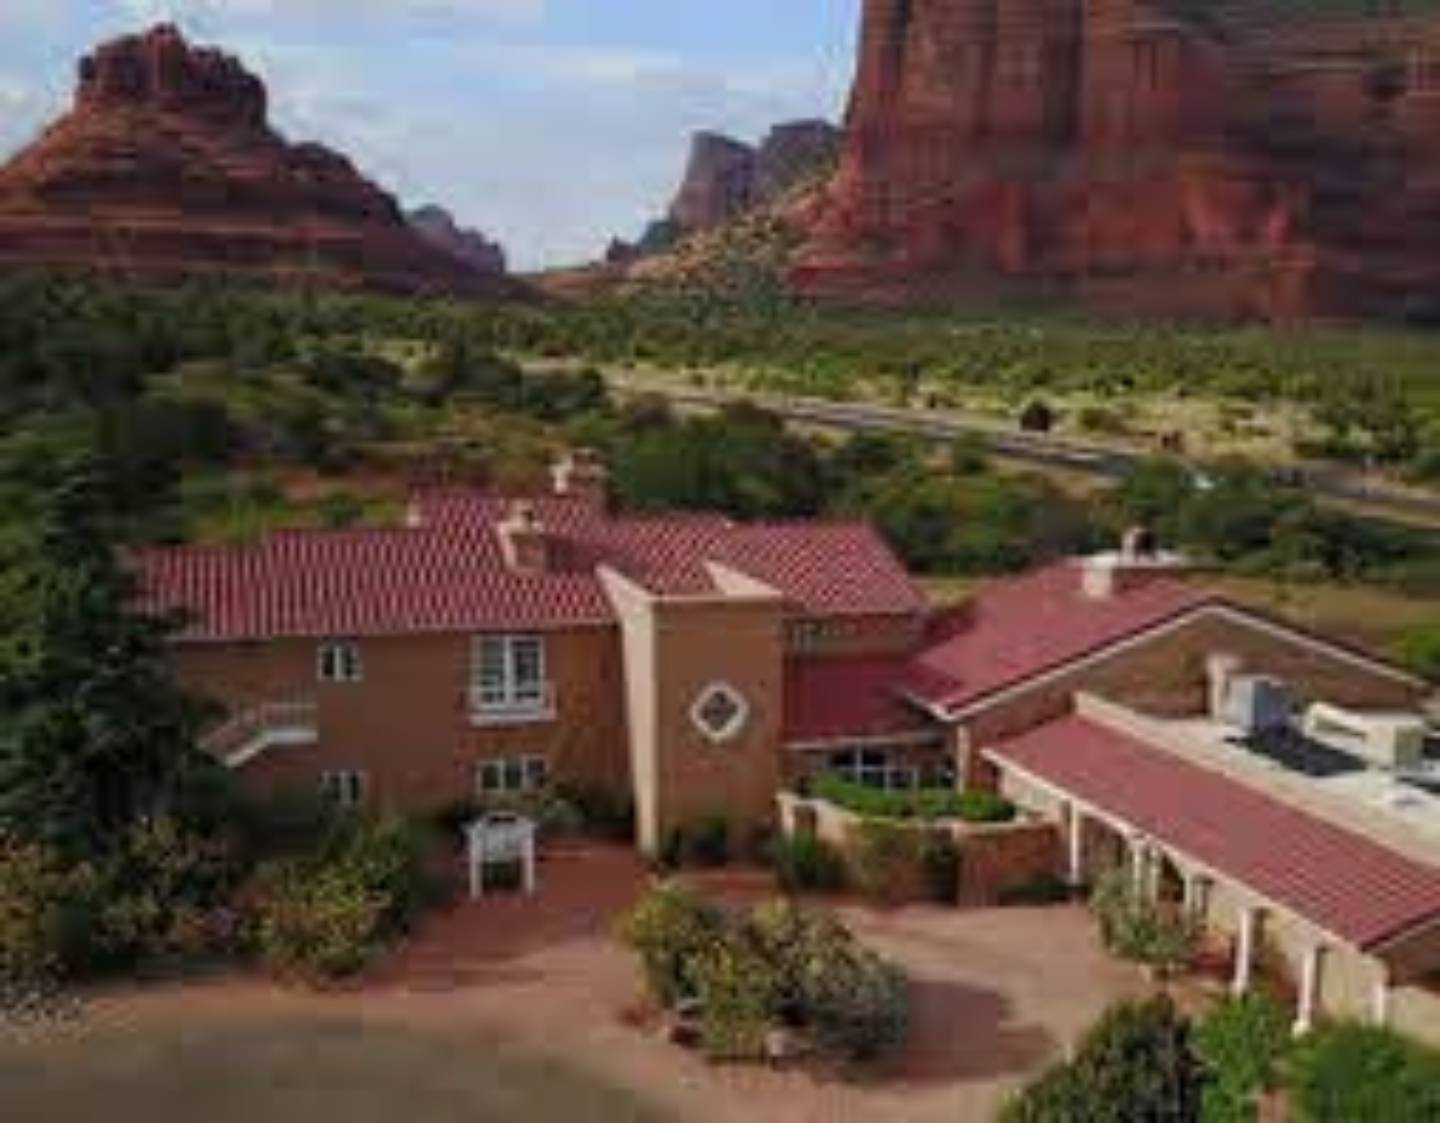 A large brick building with grass and trees at Canyon Villa Bed & Breakfast Inn of Sedona.